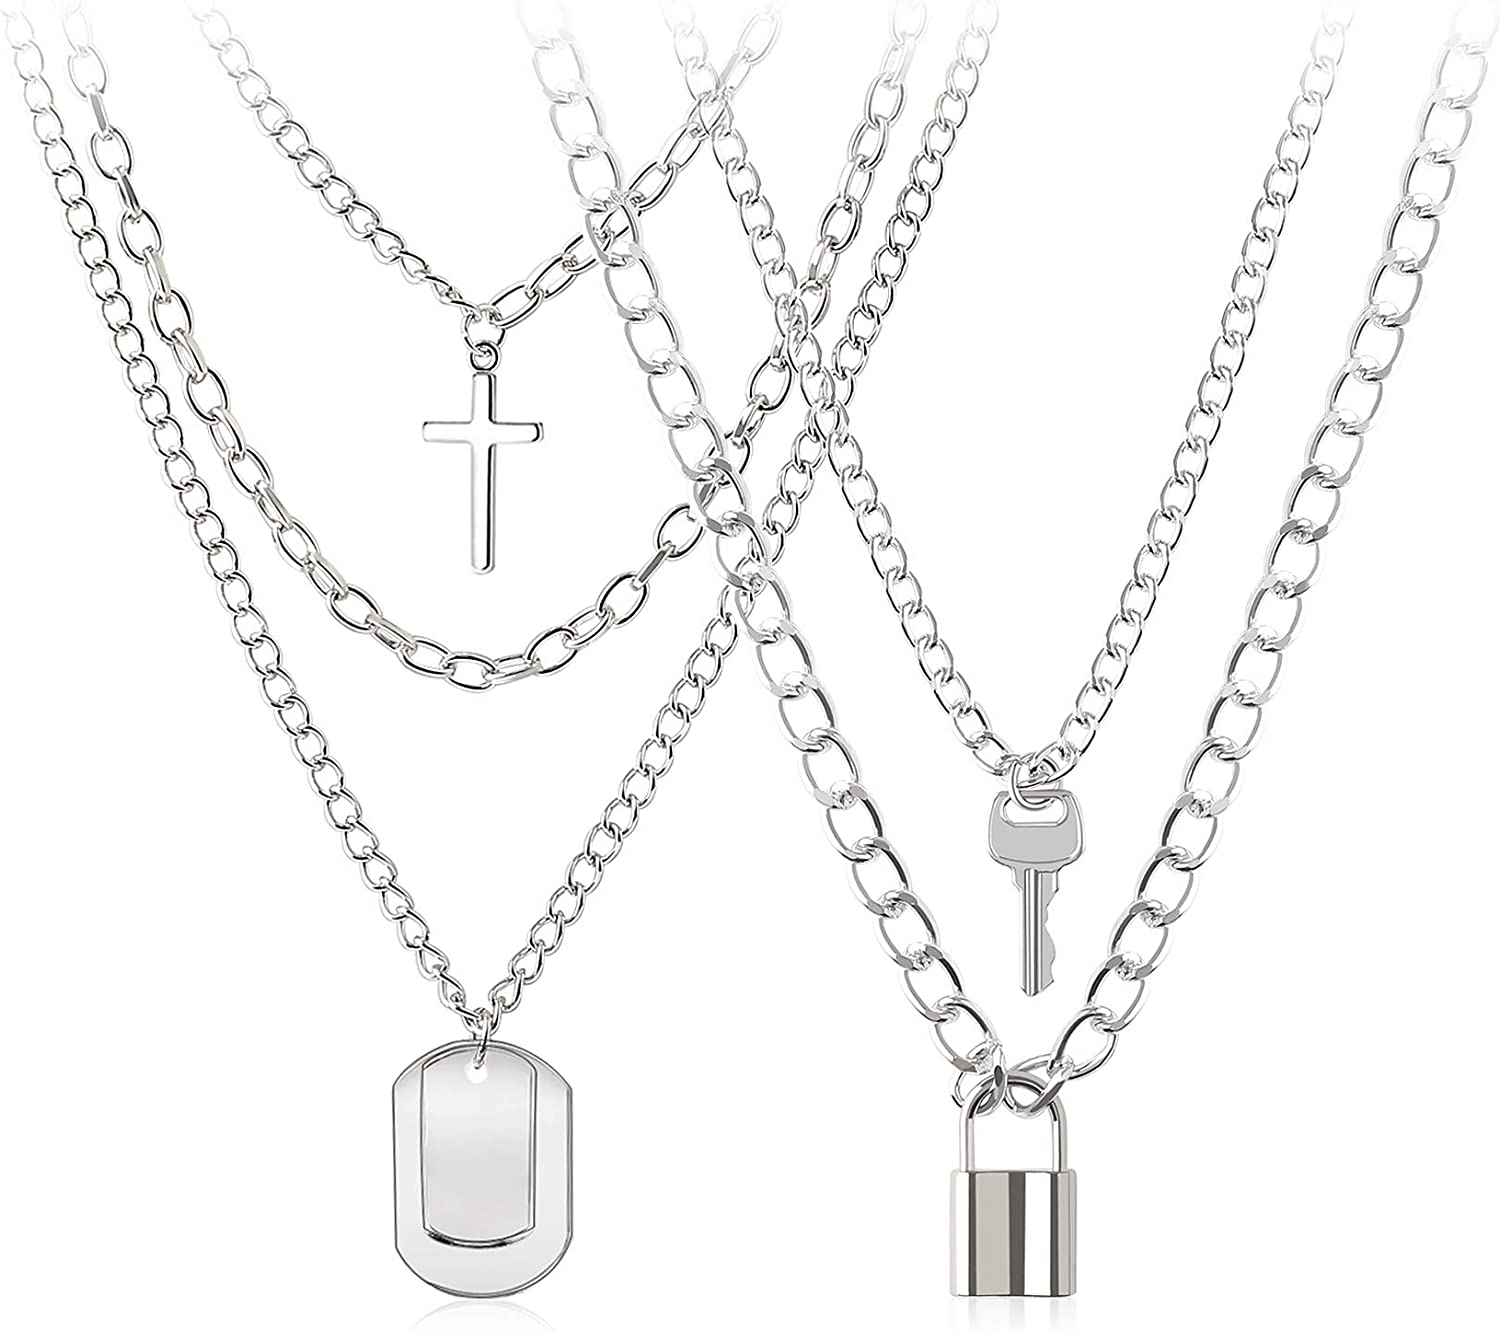 Lock Necklace Key Pendant Multilayer Chain Stainless Steel Choker Padlock Necklaces for Girls Boys Women